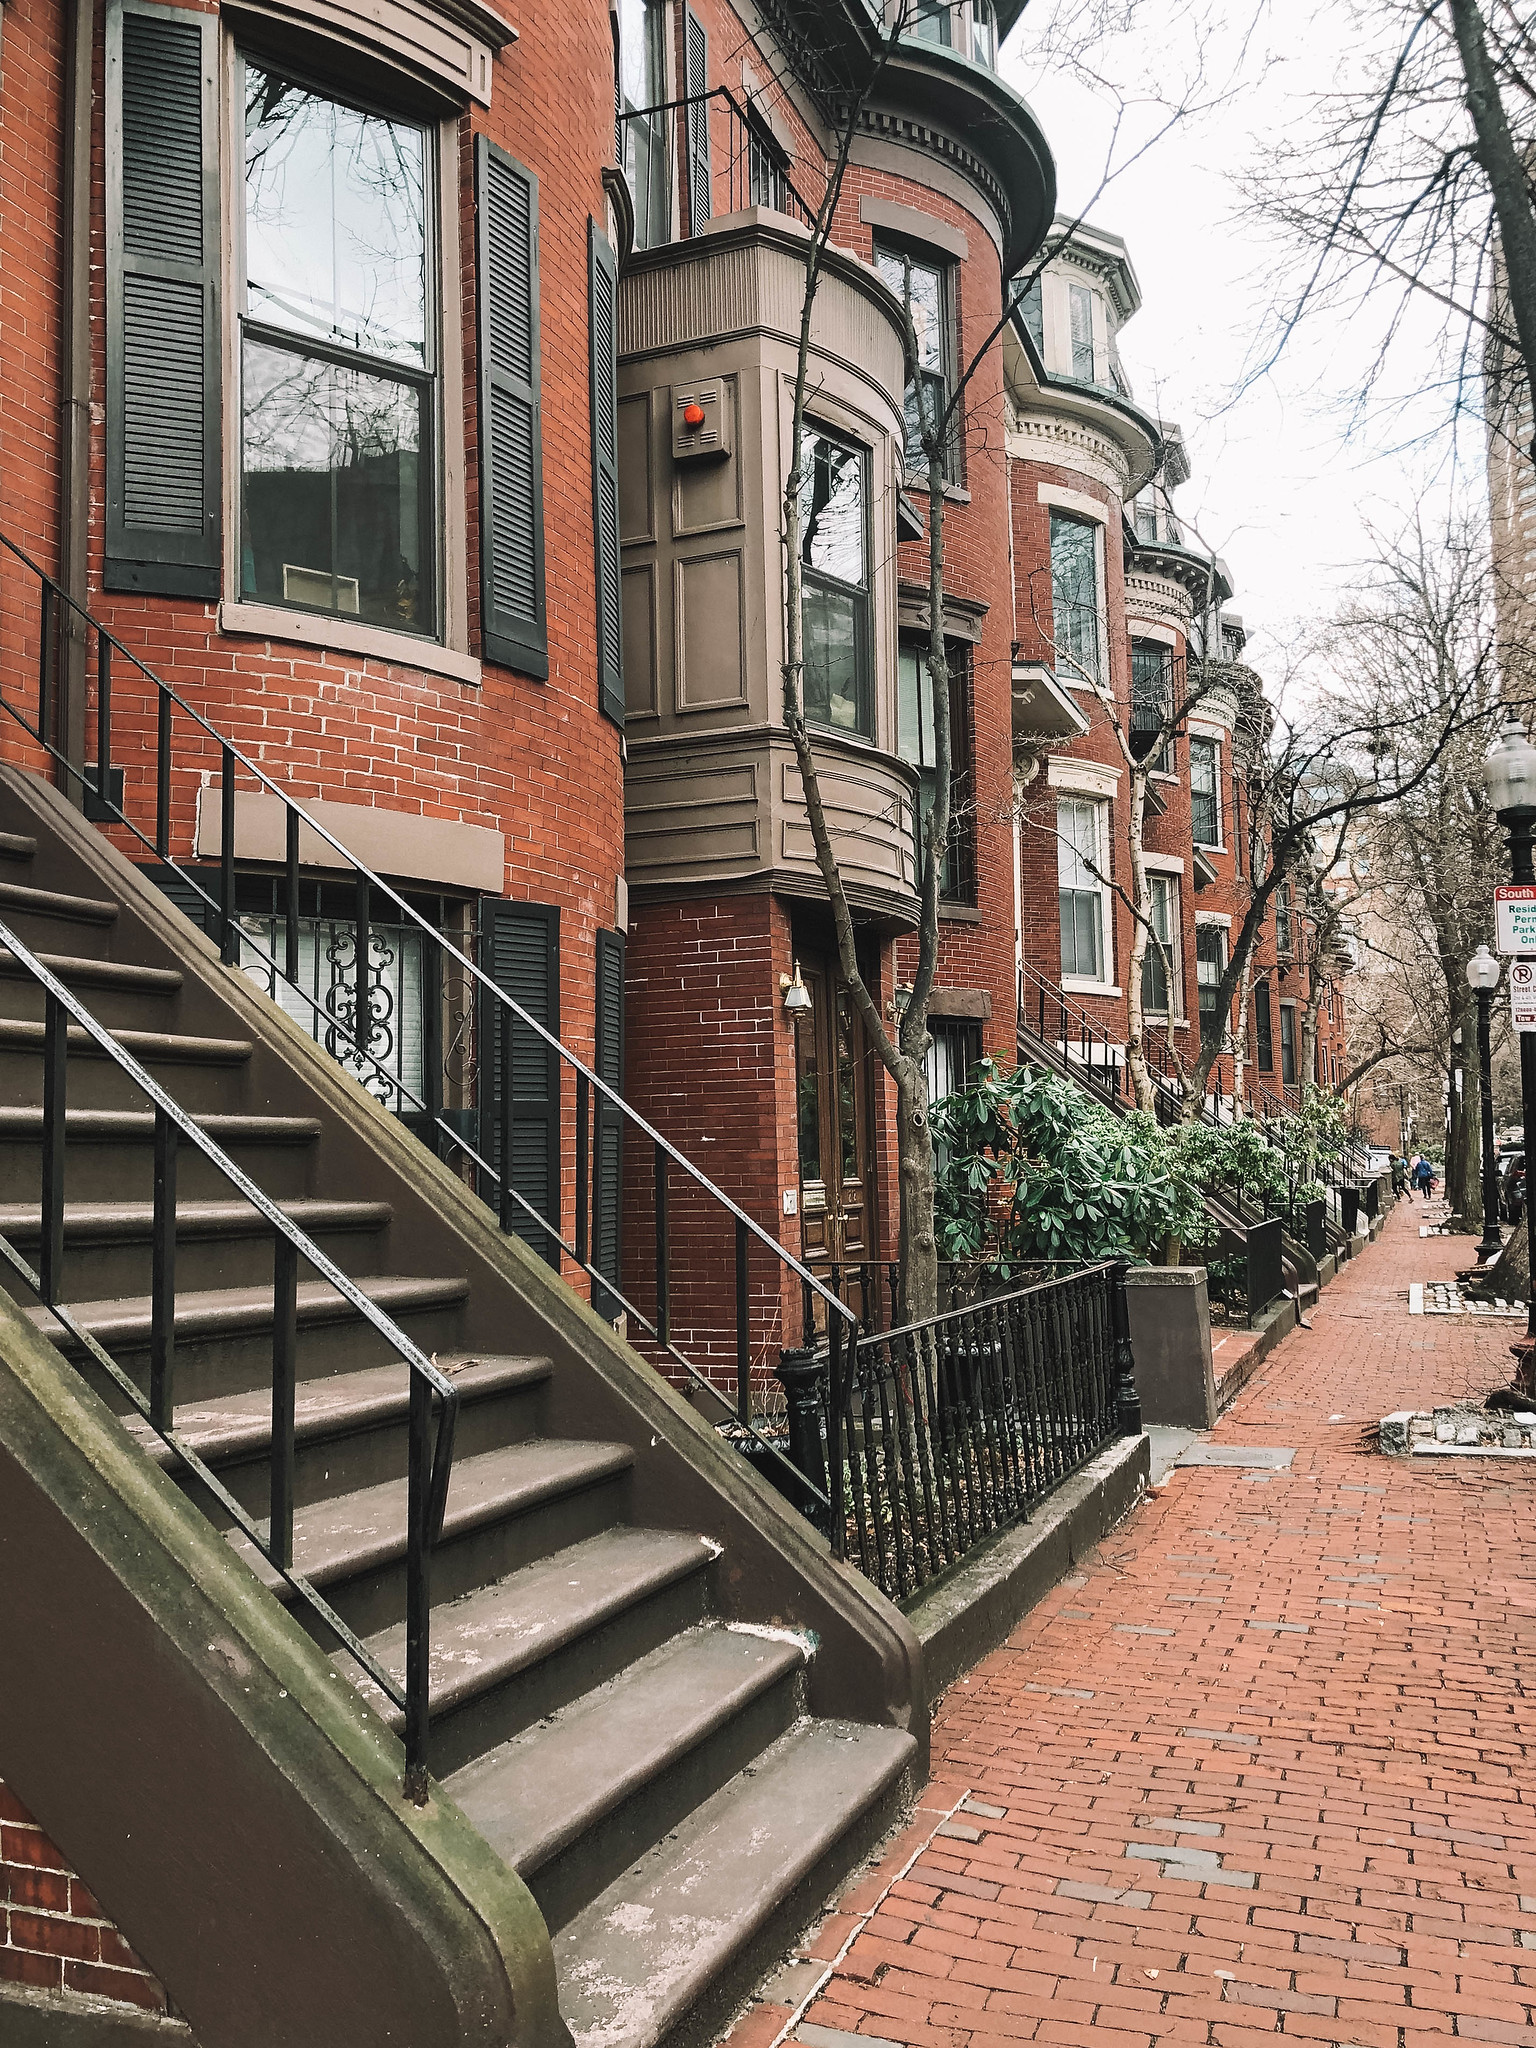 wandering down the street is a great idea for what to do in boston alone